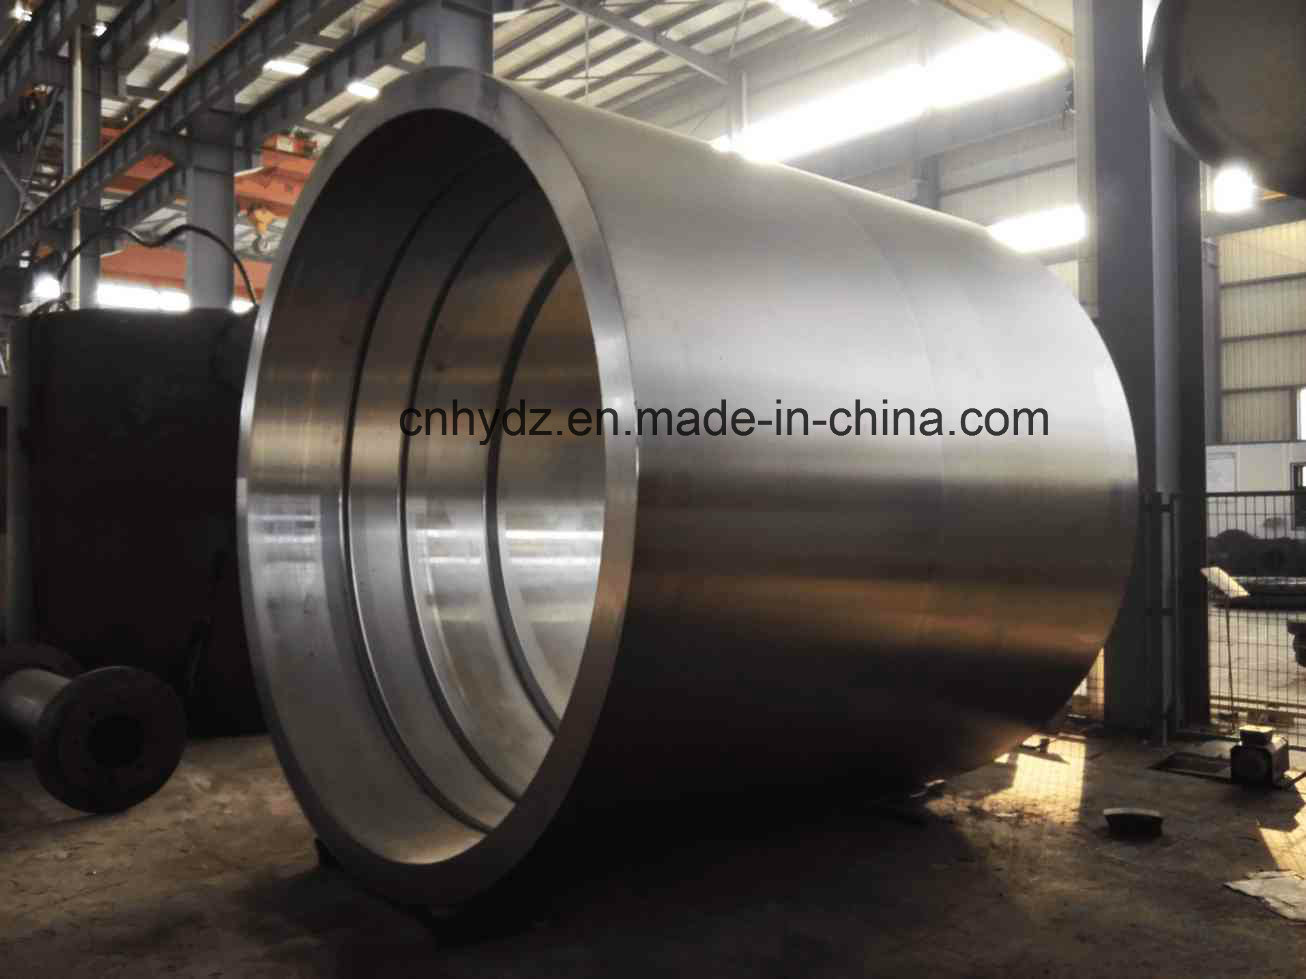 Hot Forged Cylinder 20mnmo Used for Pressure Vessel